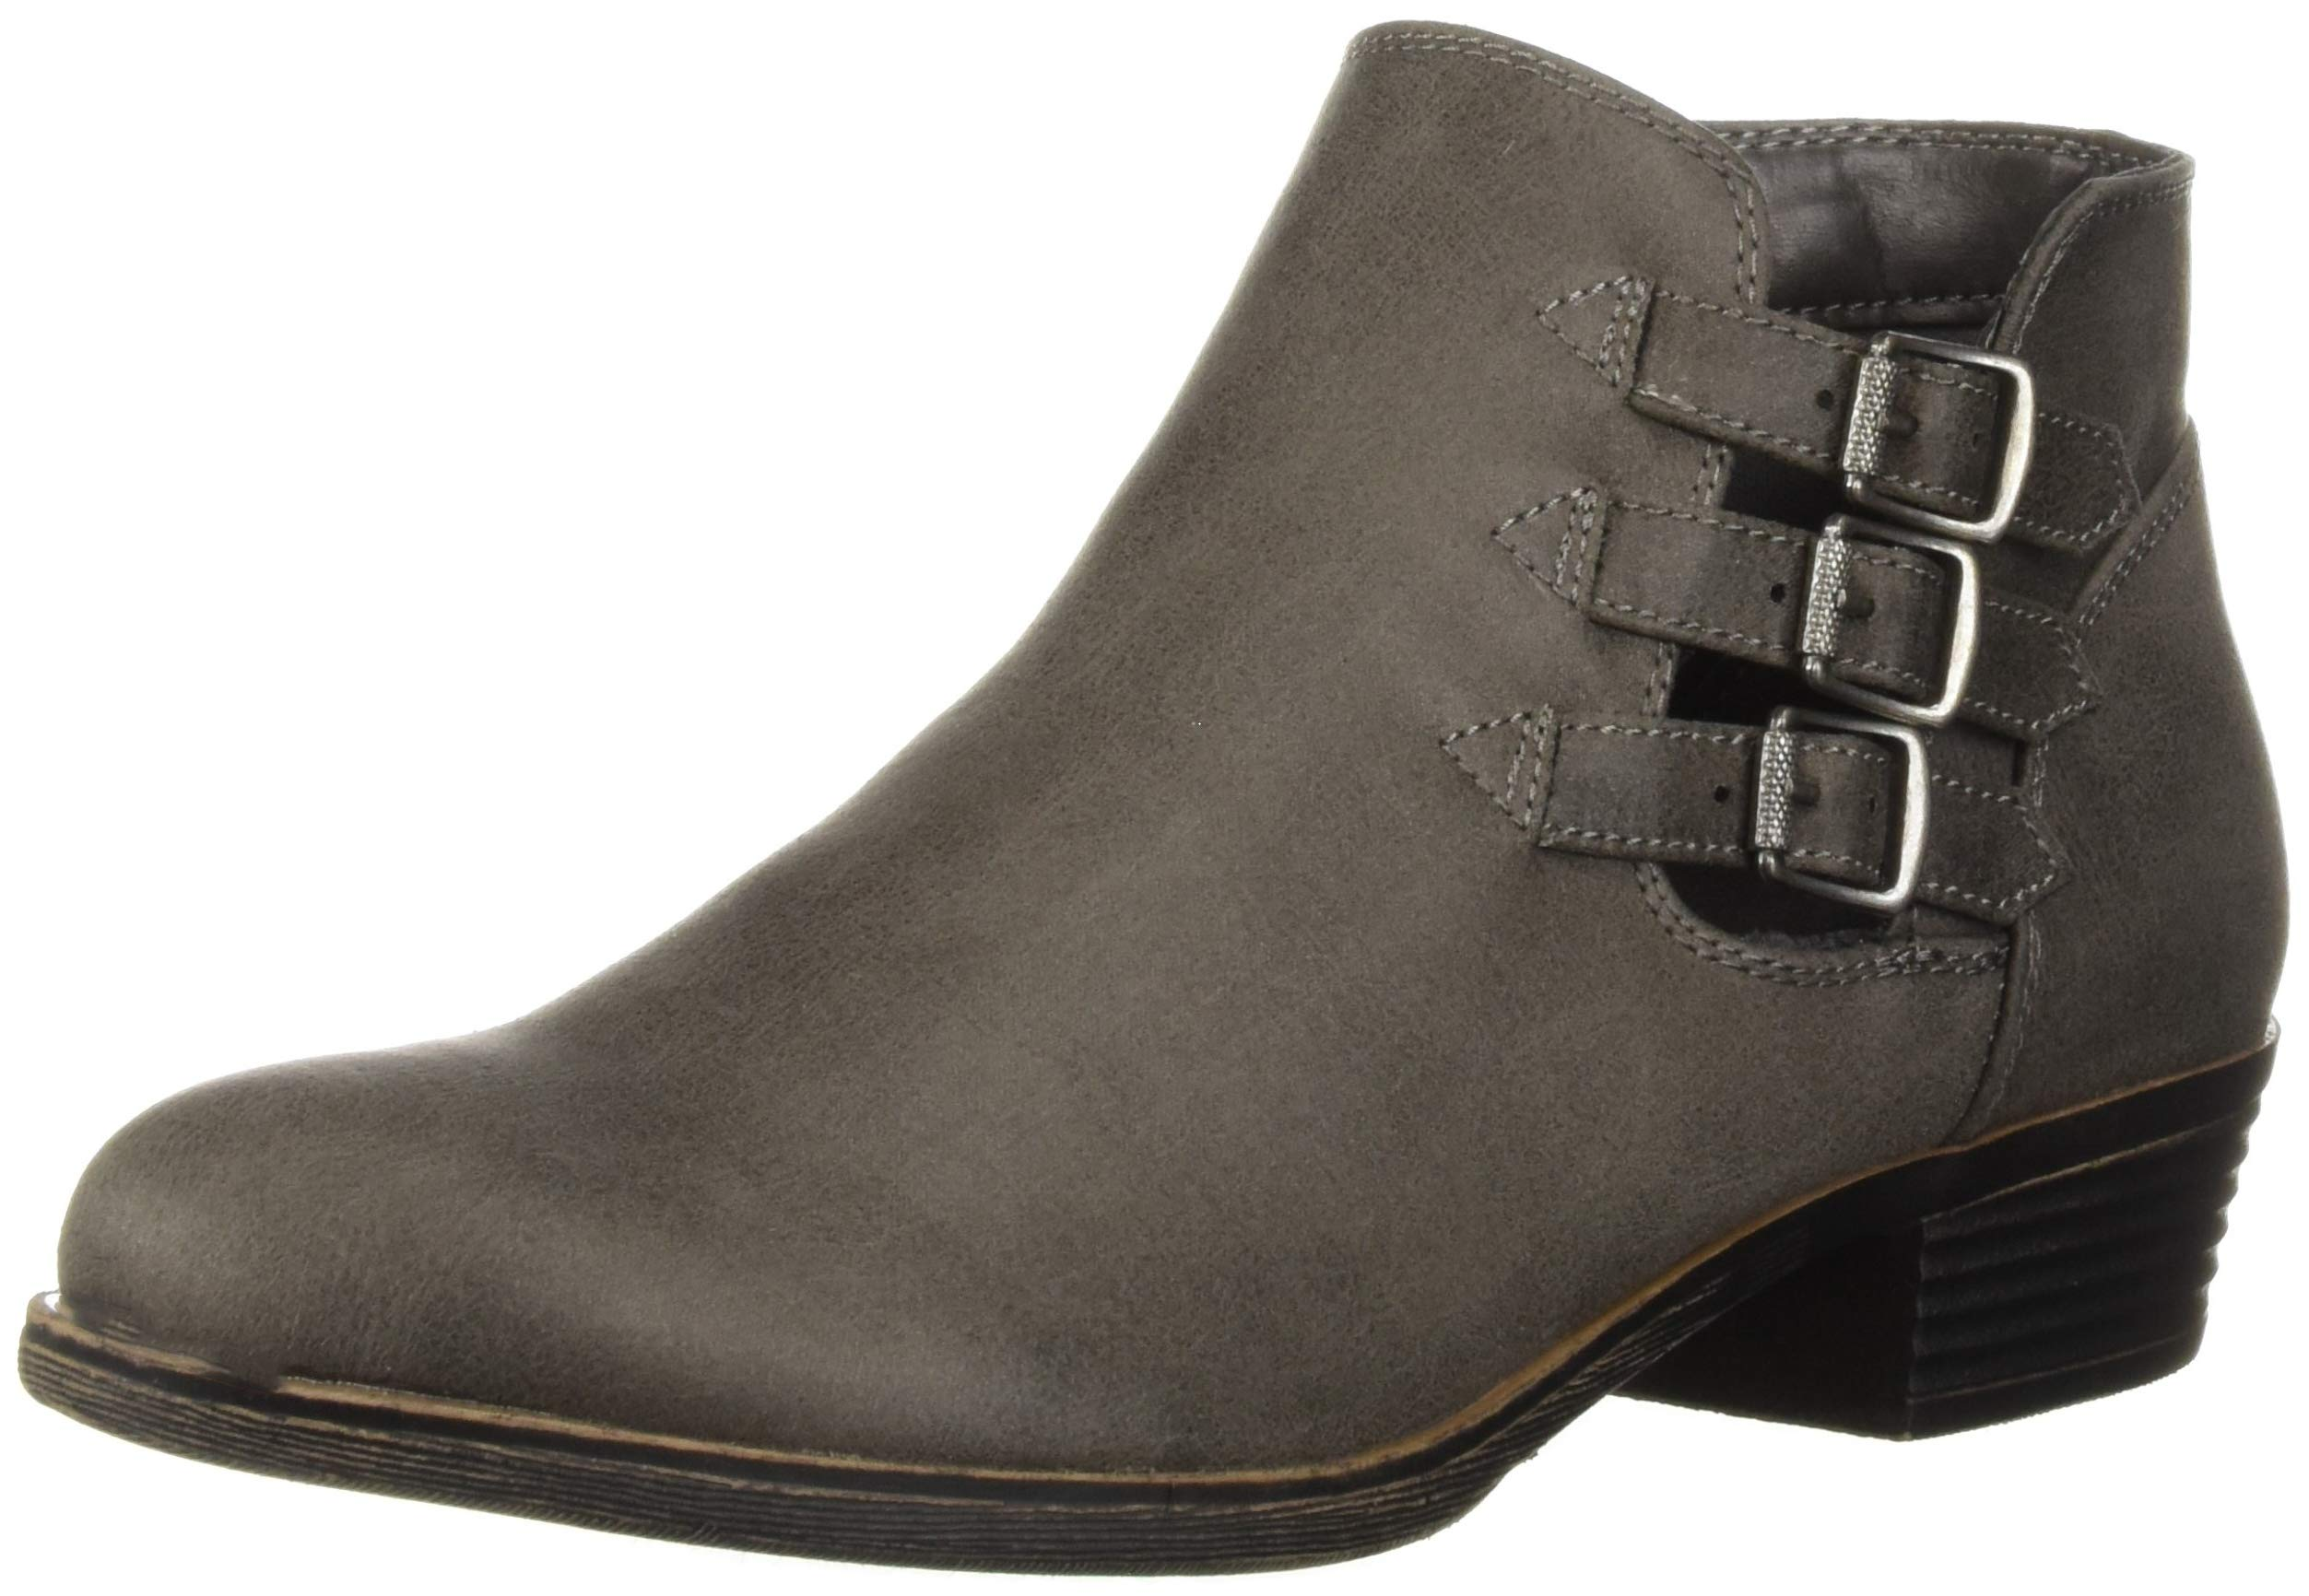 Sugar Women's Tikki Ankle Boot, Grey, 9.5 M US